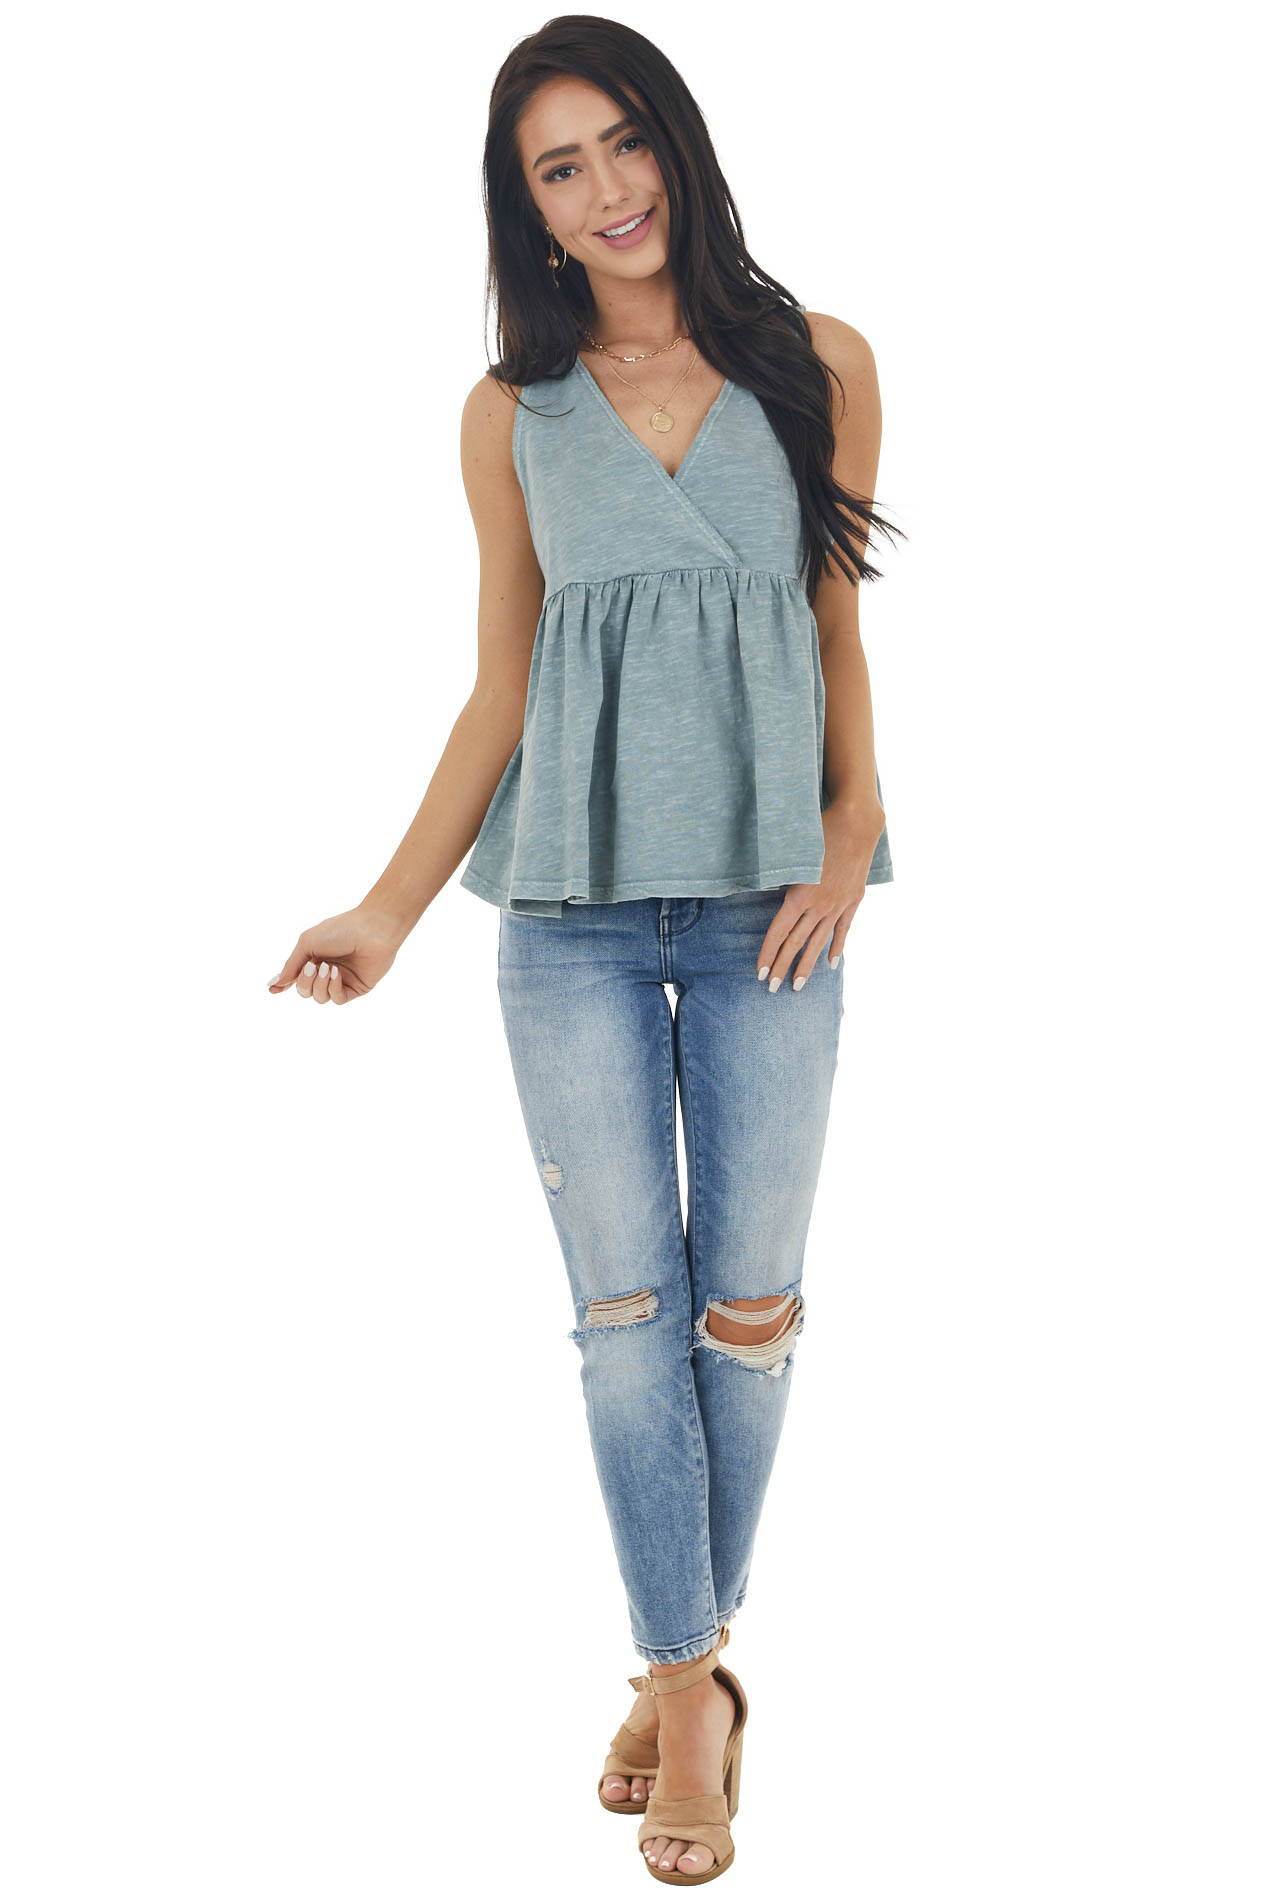 Dusty Sage Sleeveless Babydoll Top with Raw Details